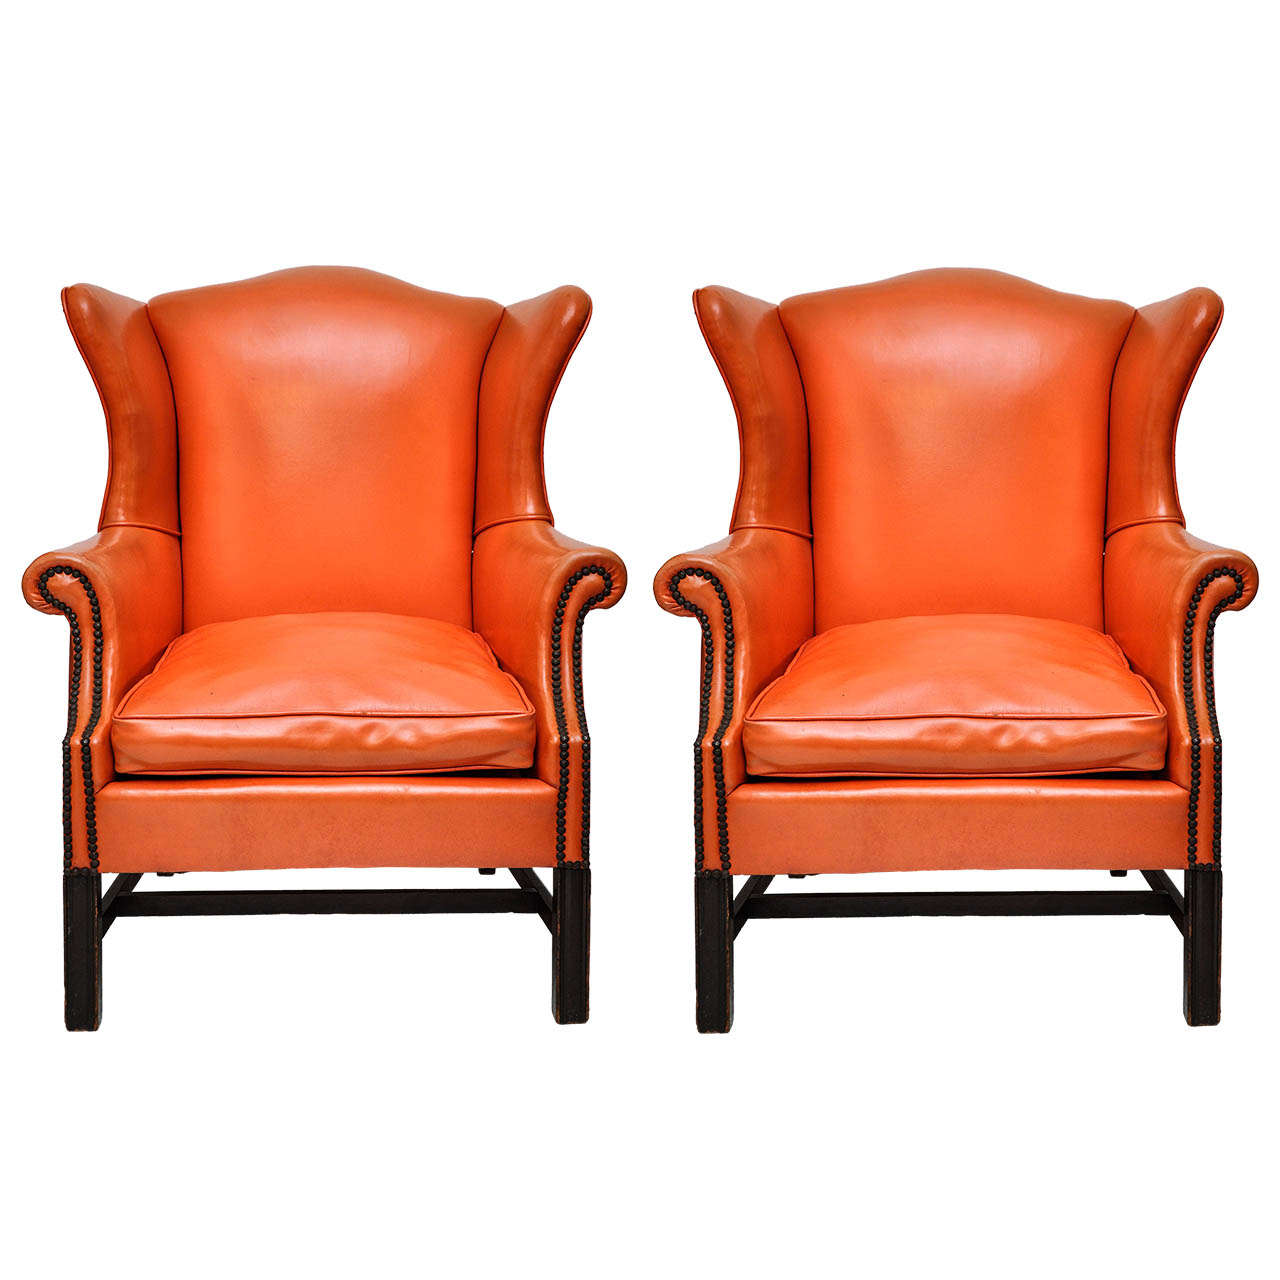 Vintage Orange Leather Wing Chair For